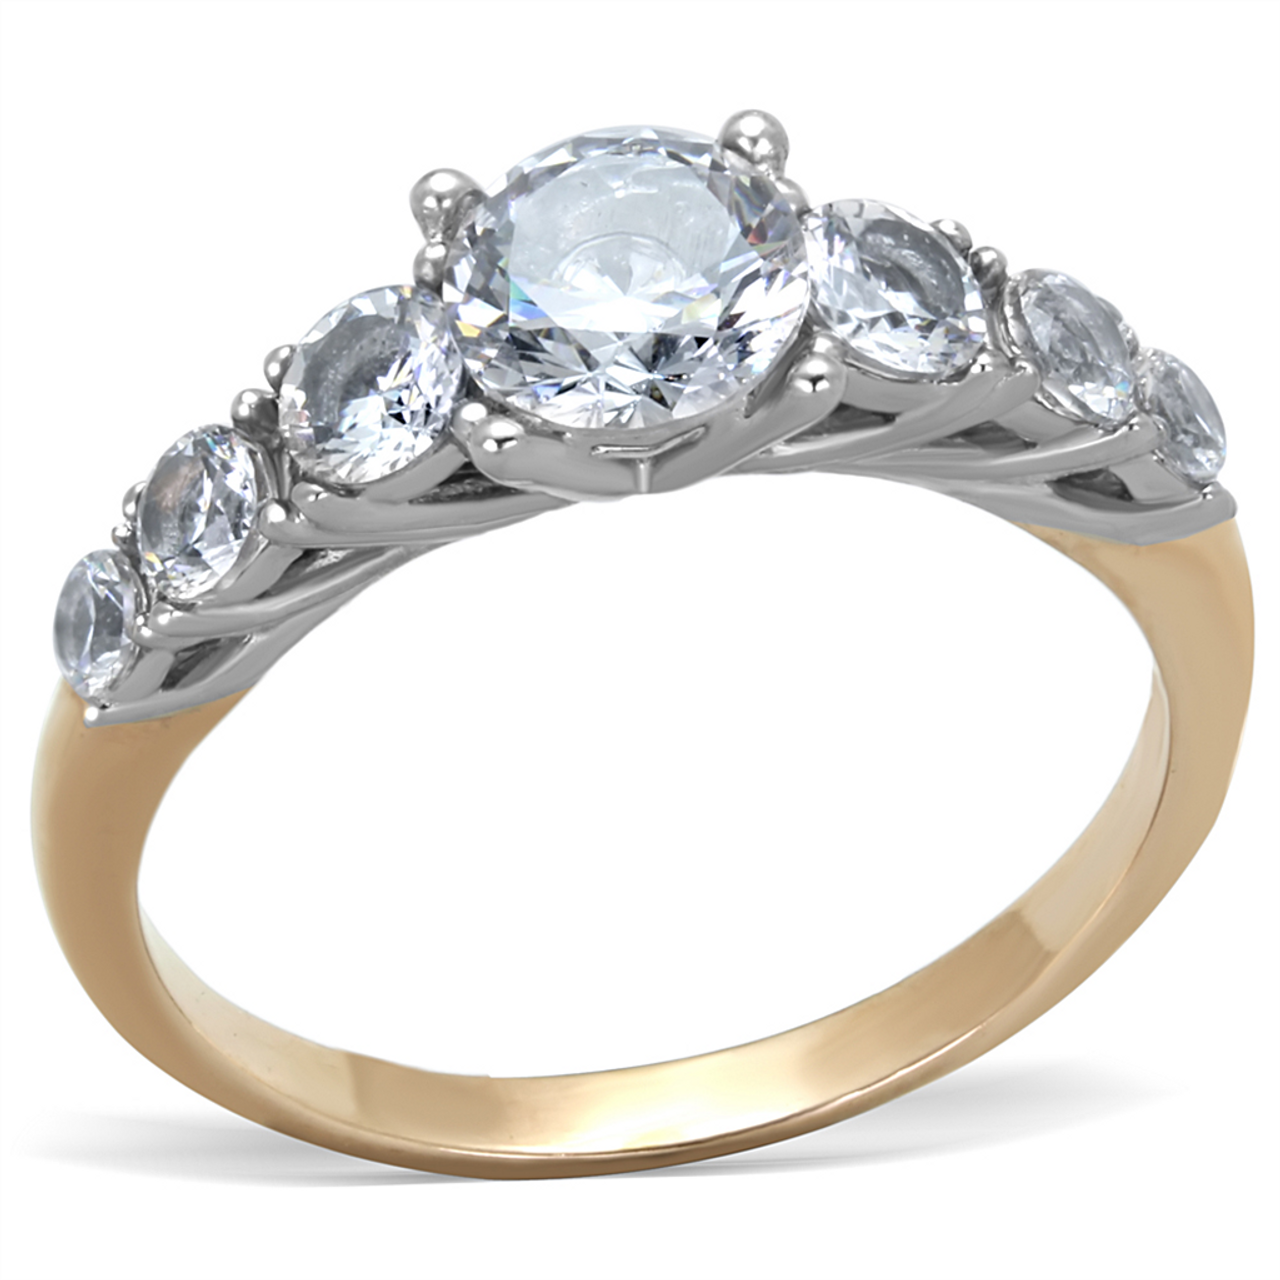 d1dd8b20b423b Personalized Stainless Steel Two Tone Engagement Ring